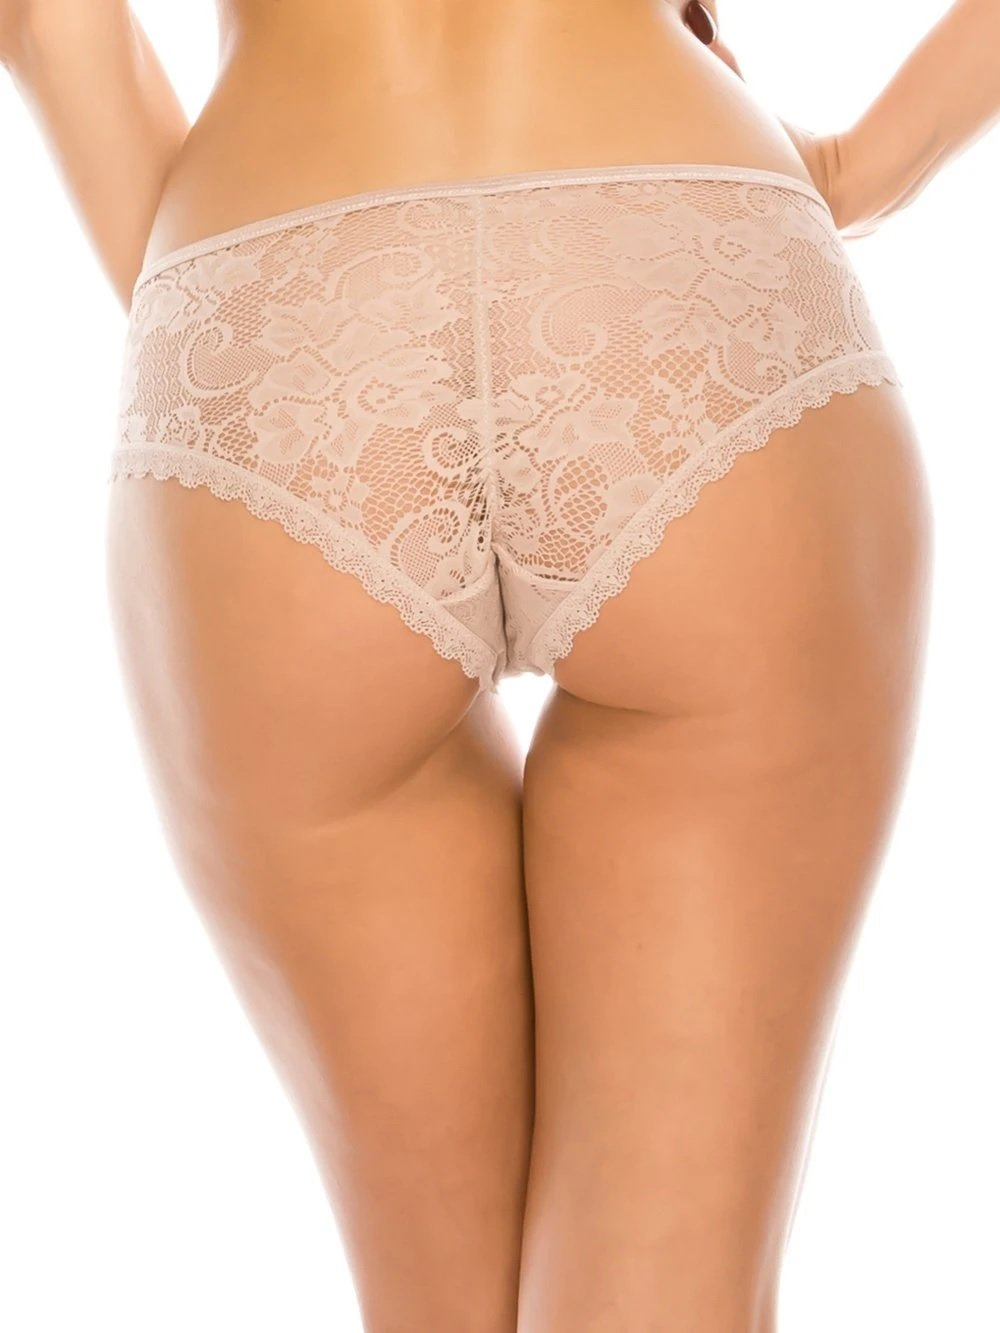 Lace Bikini with Open Side - Youmita Lingerie